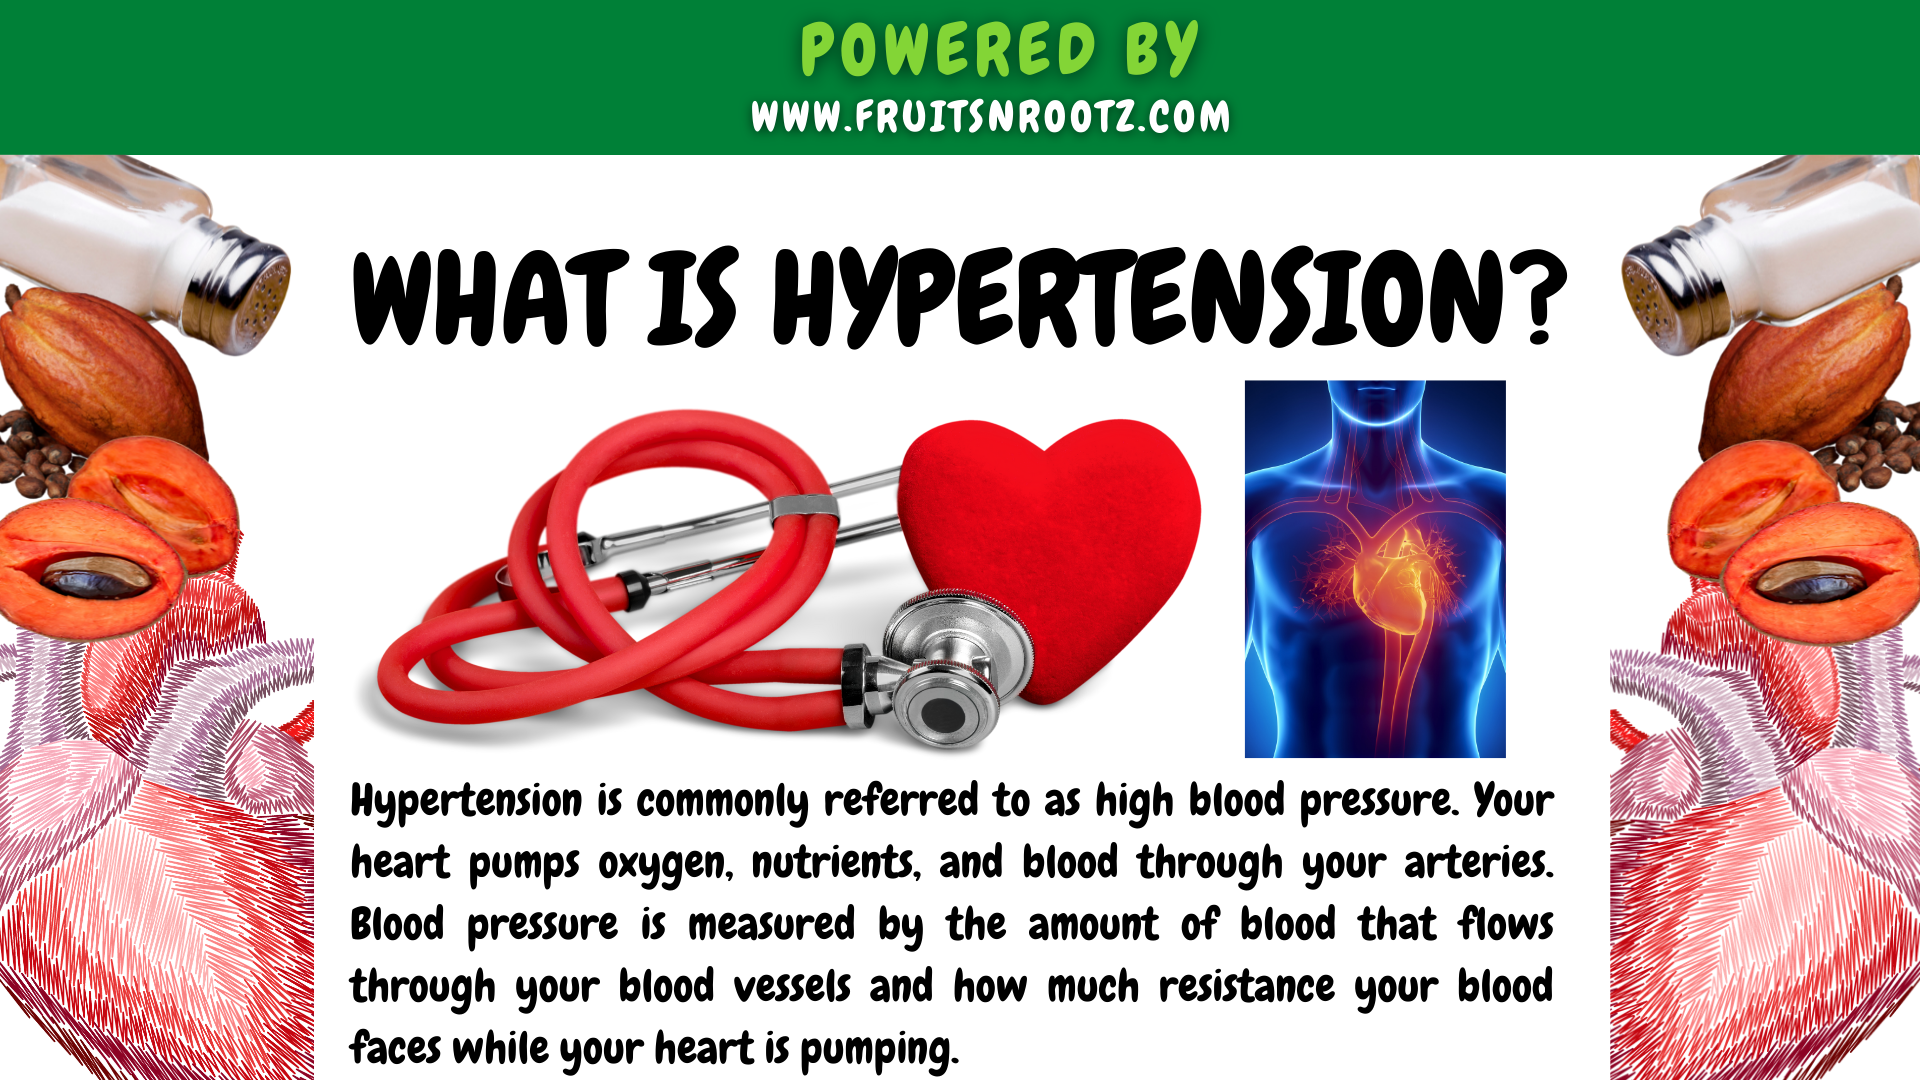 Fruits N Rootz | Hypertension Awareness Day | What Is Hypertension?